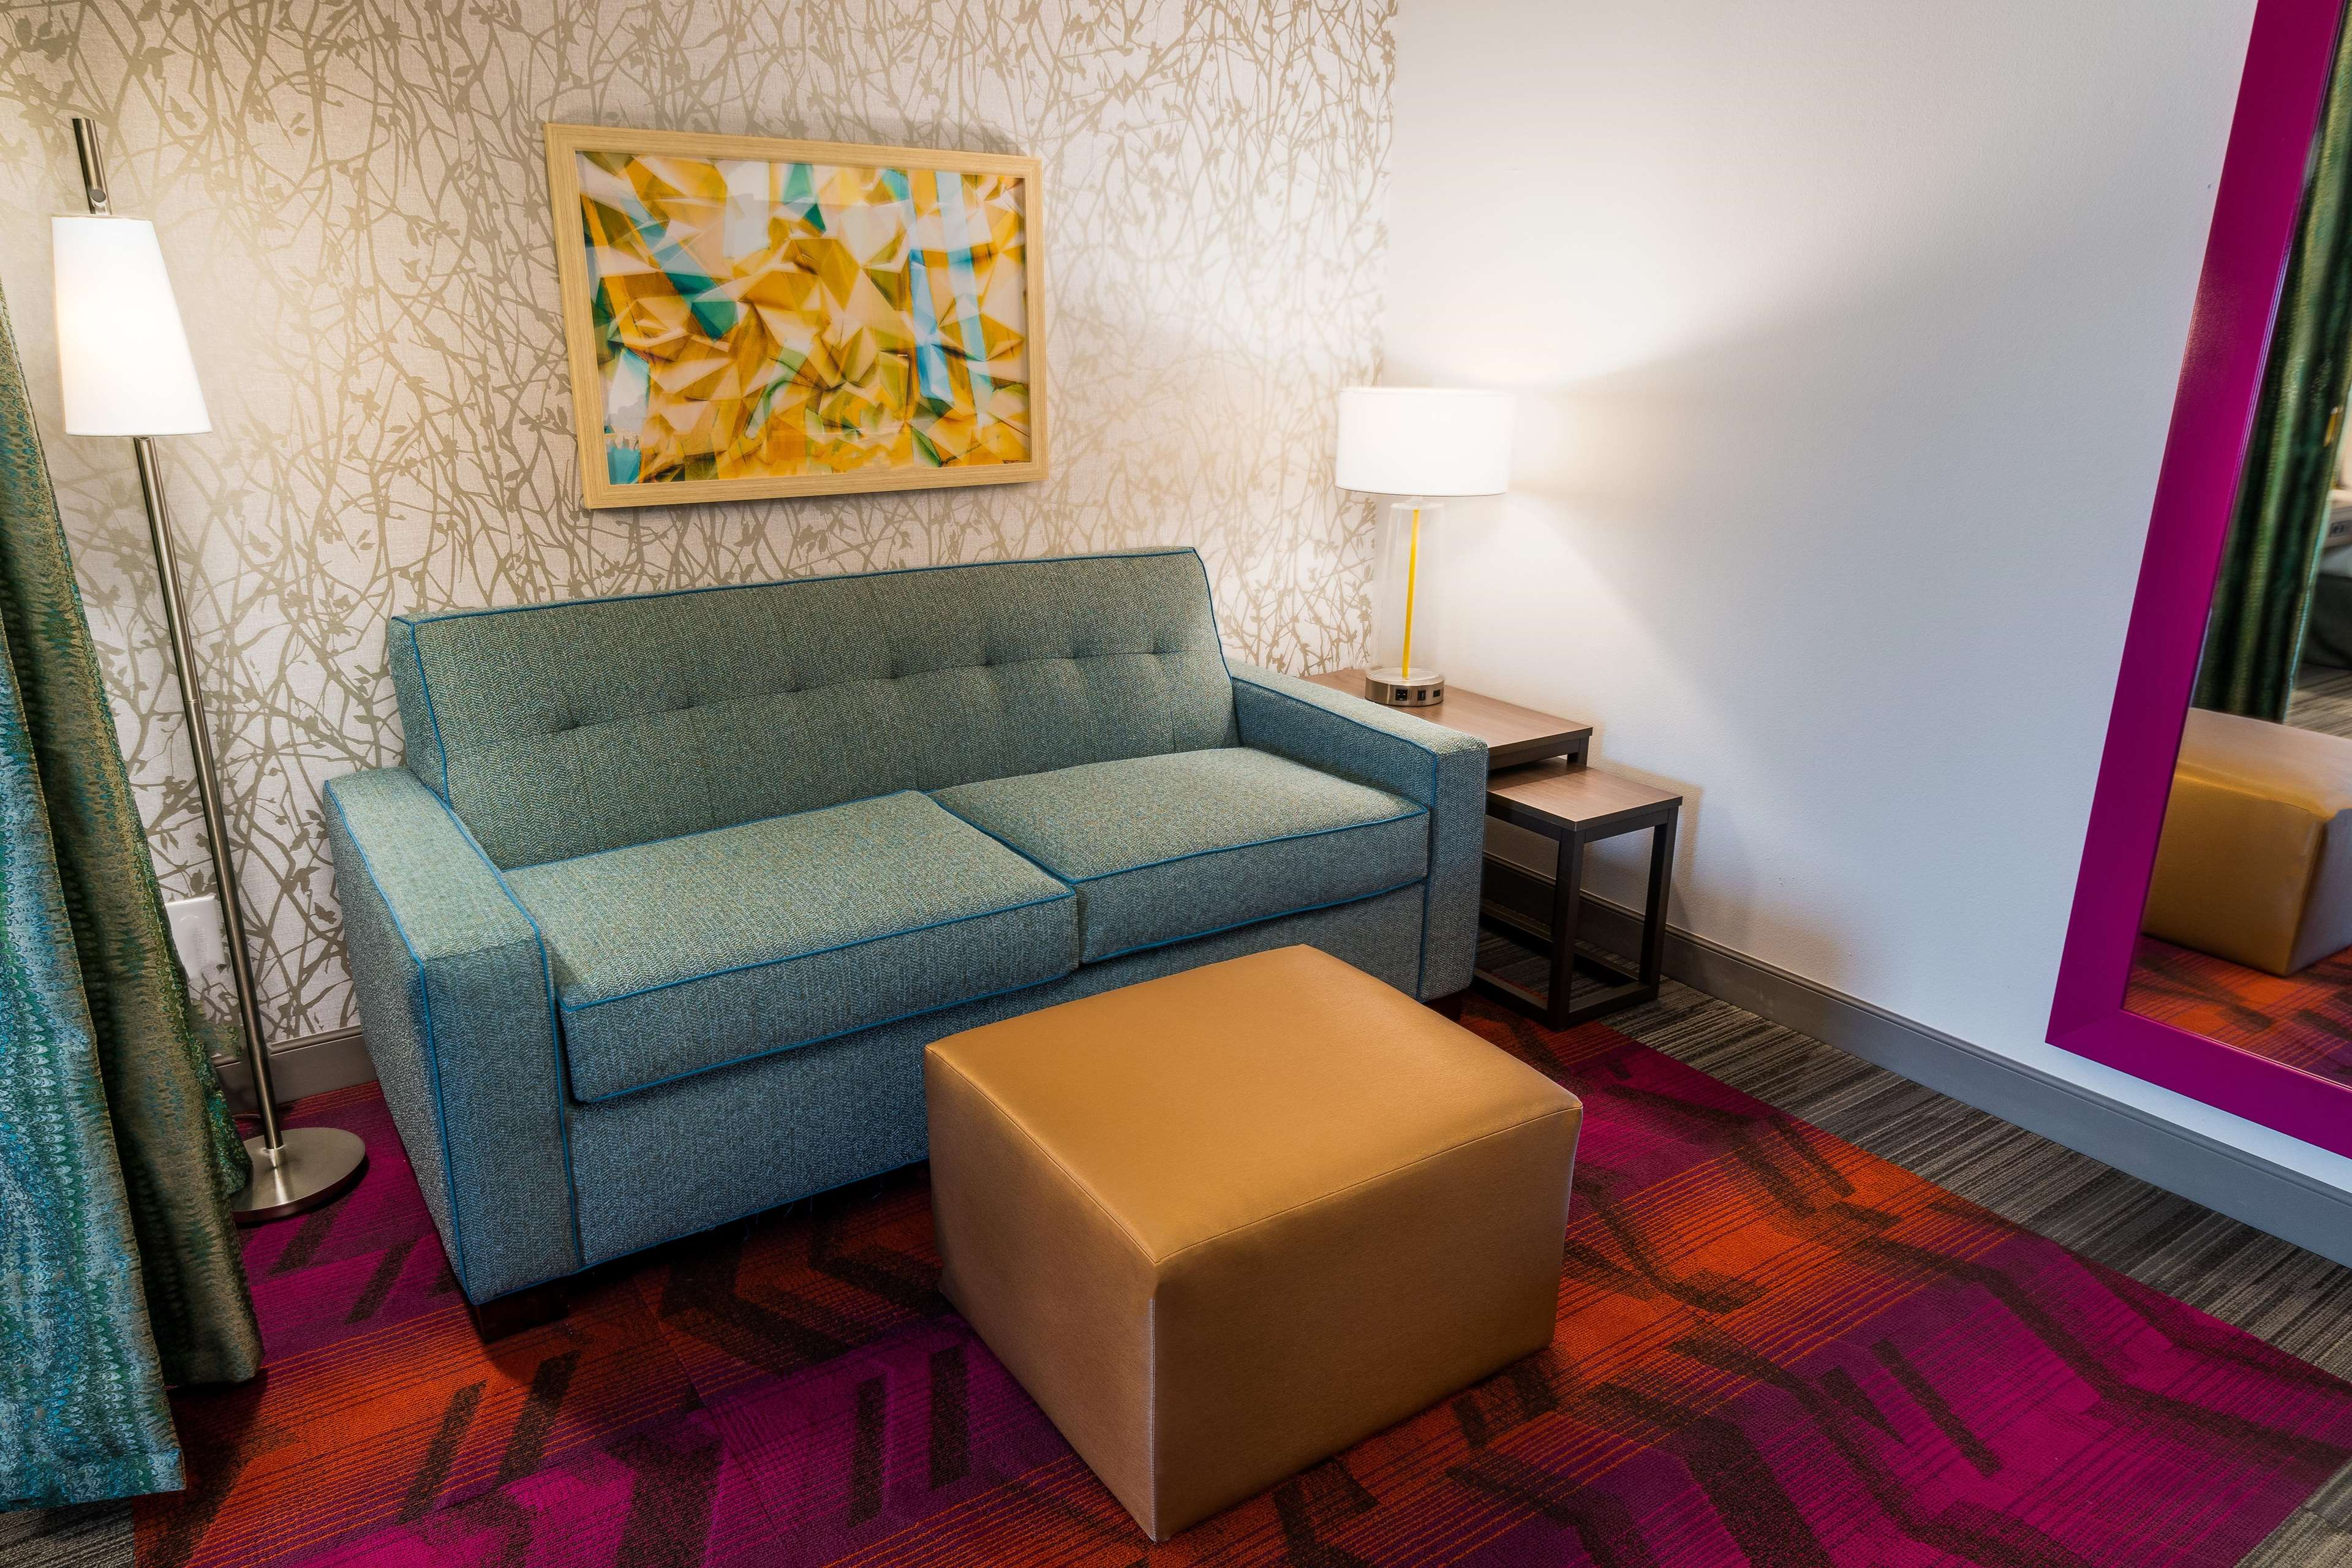 Home2 Suites By Hilton San Antonio At The Rim San Antonio